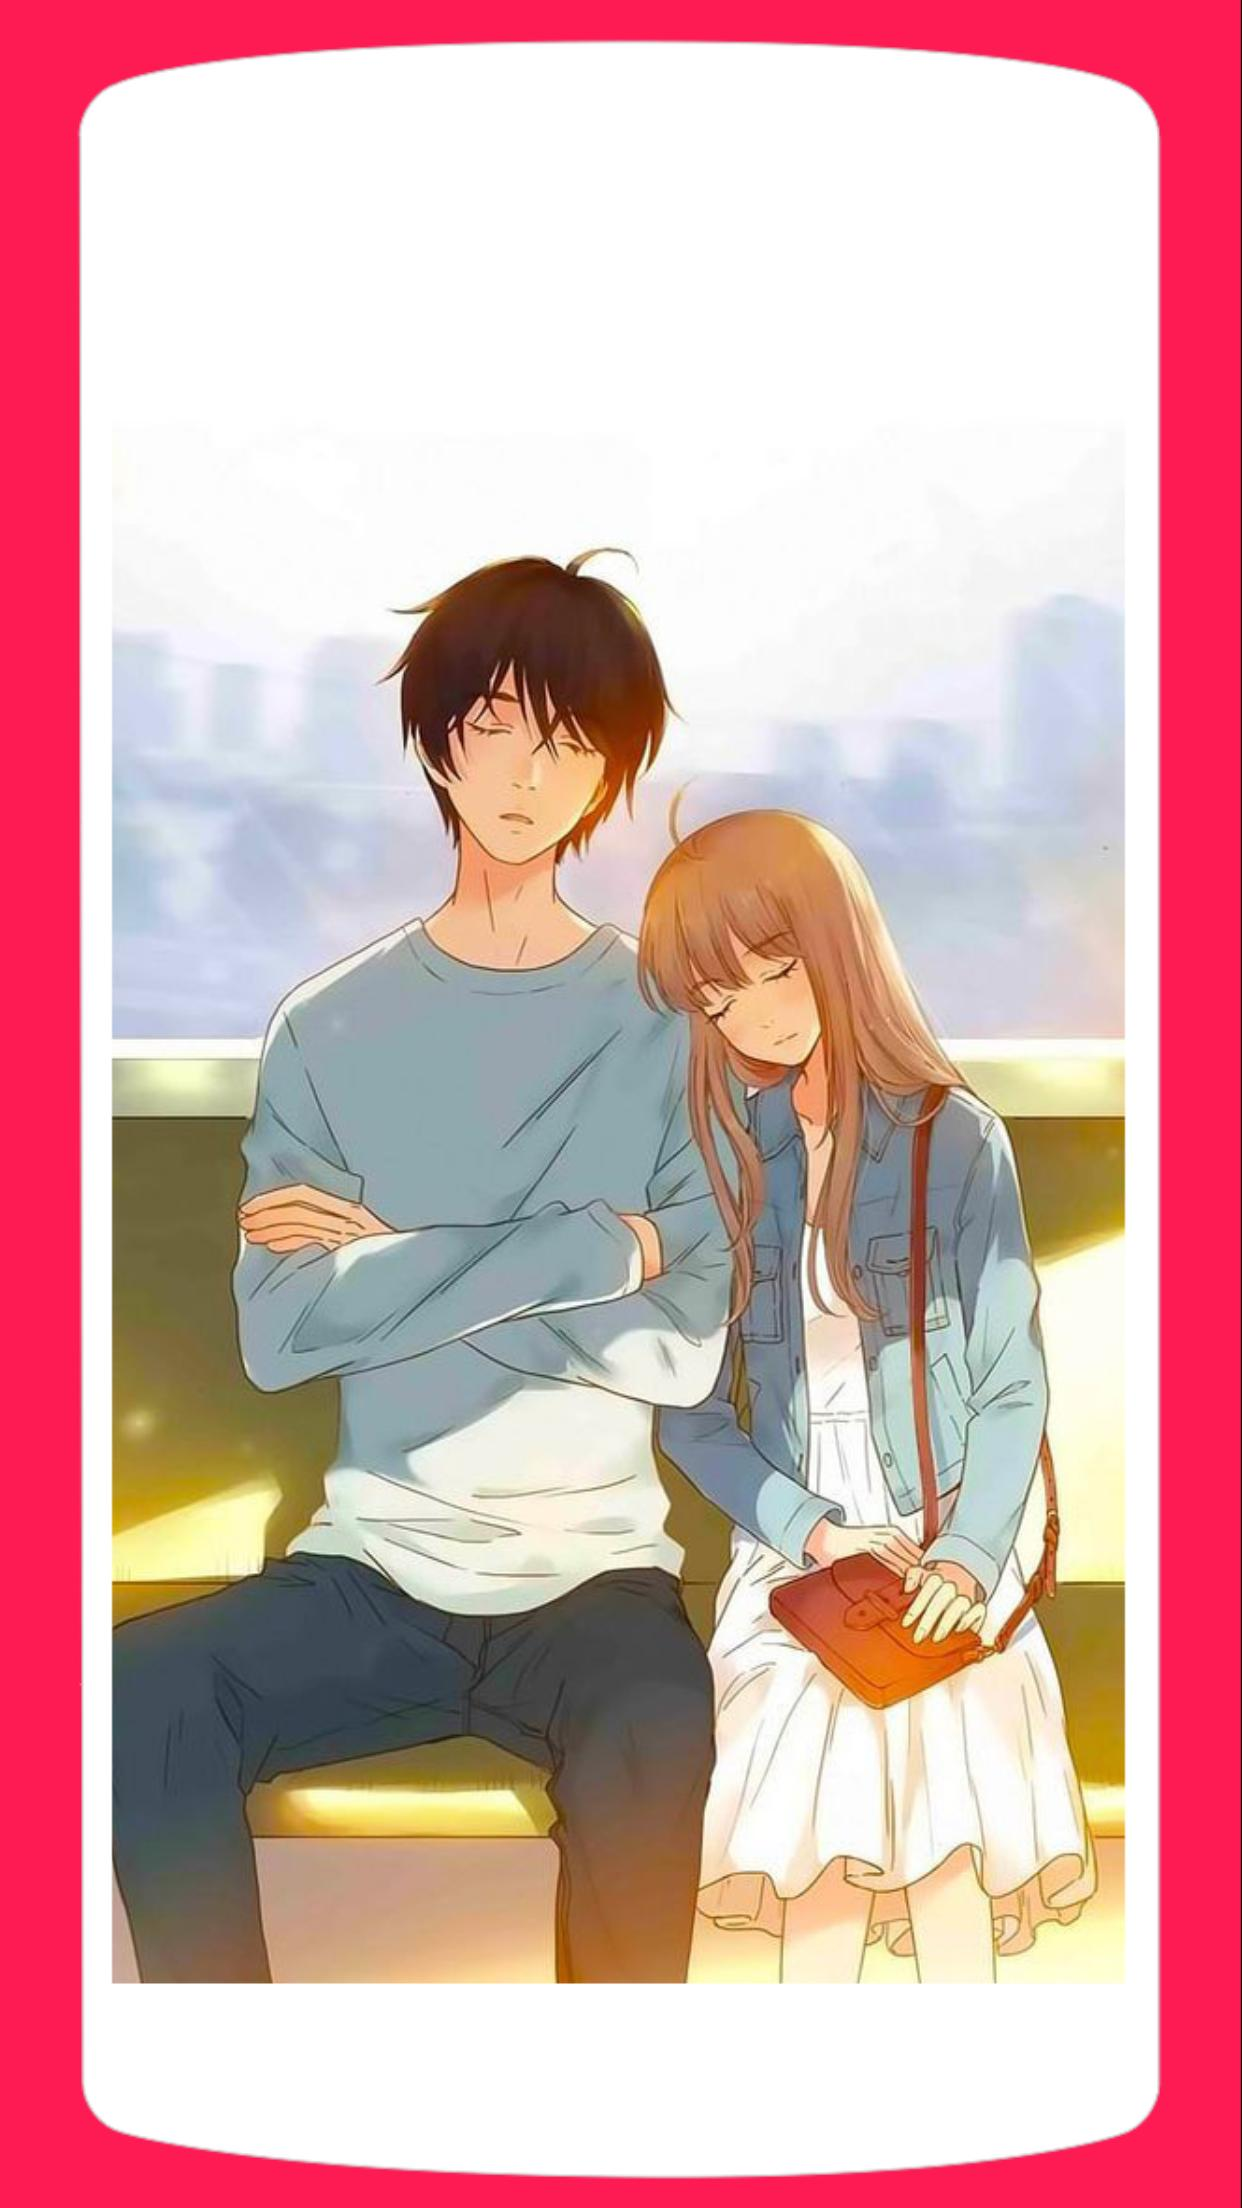 Romantic Anime Couple Wallpaper HD for Android - APK Download